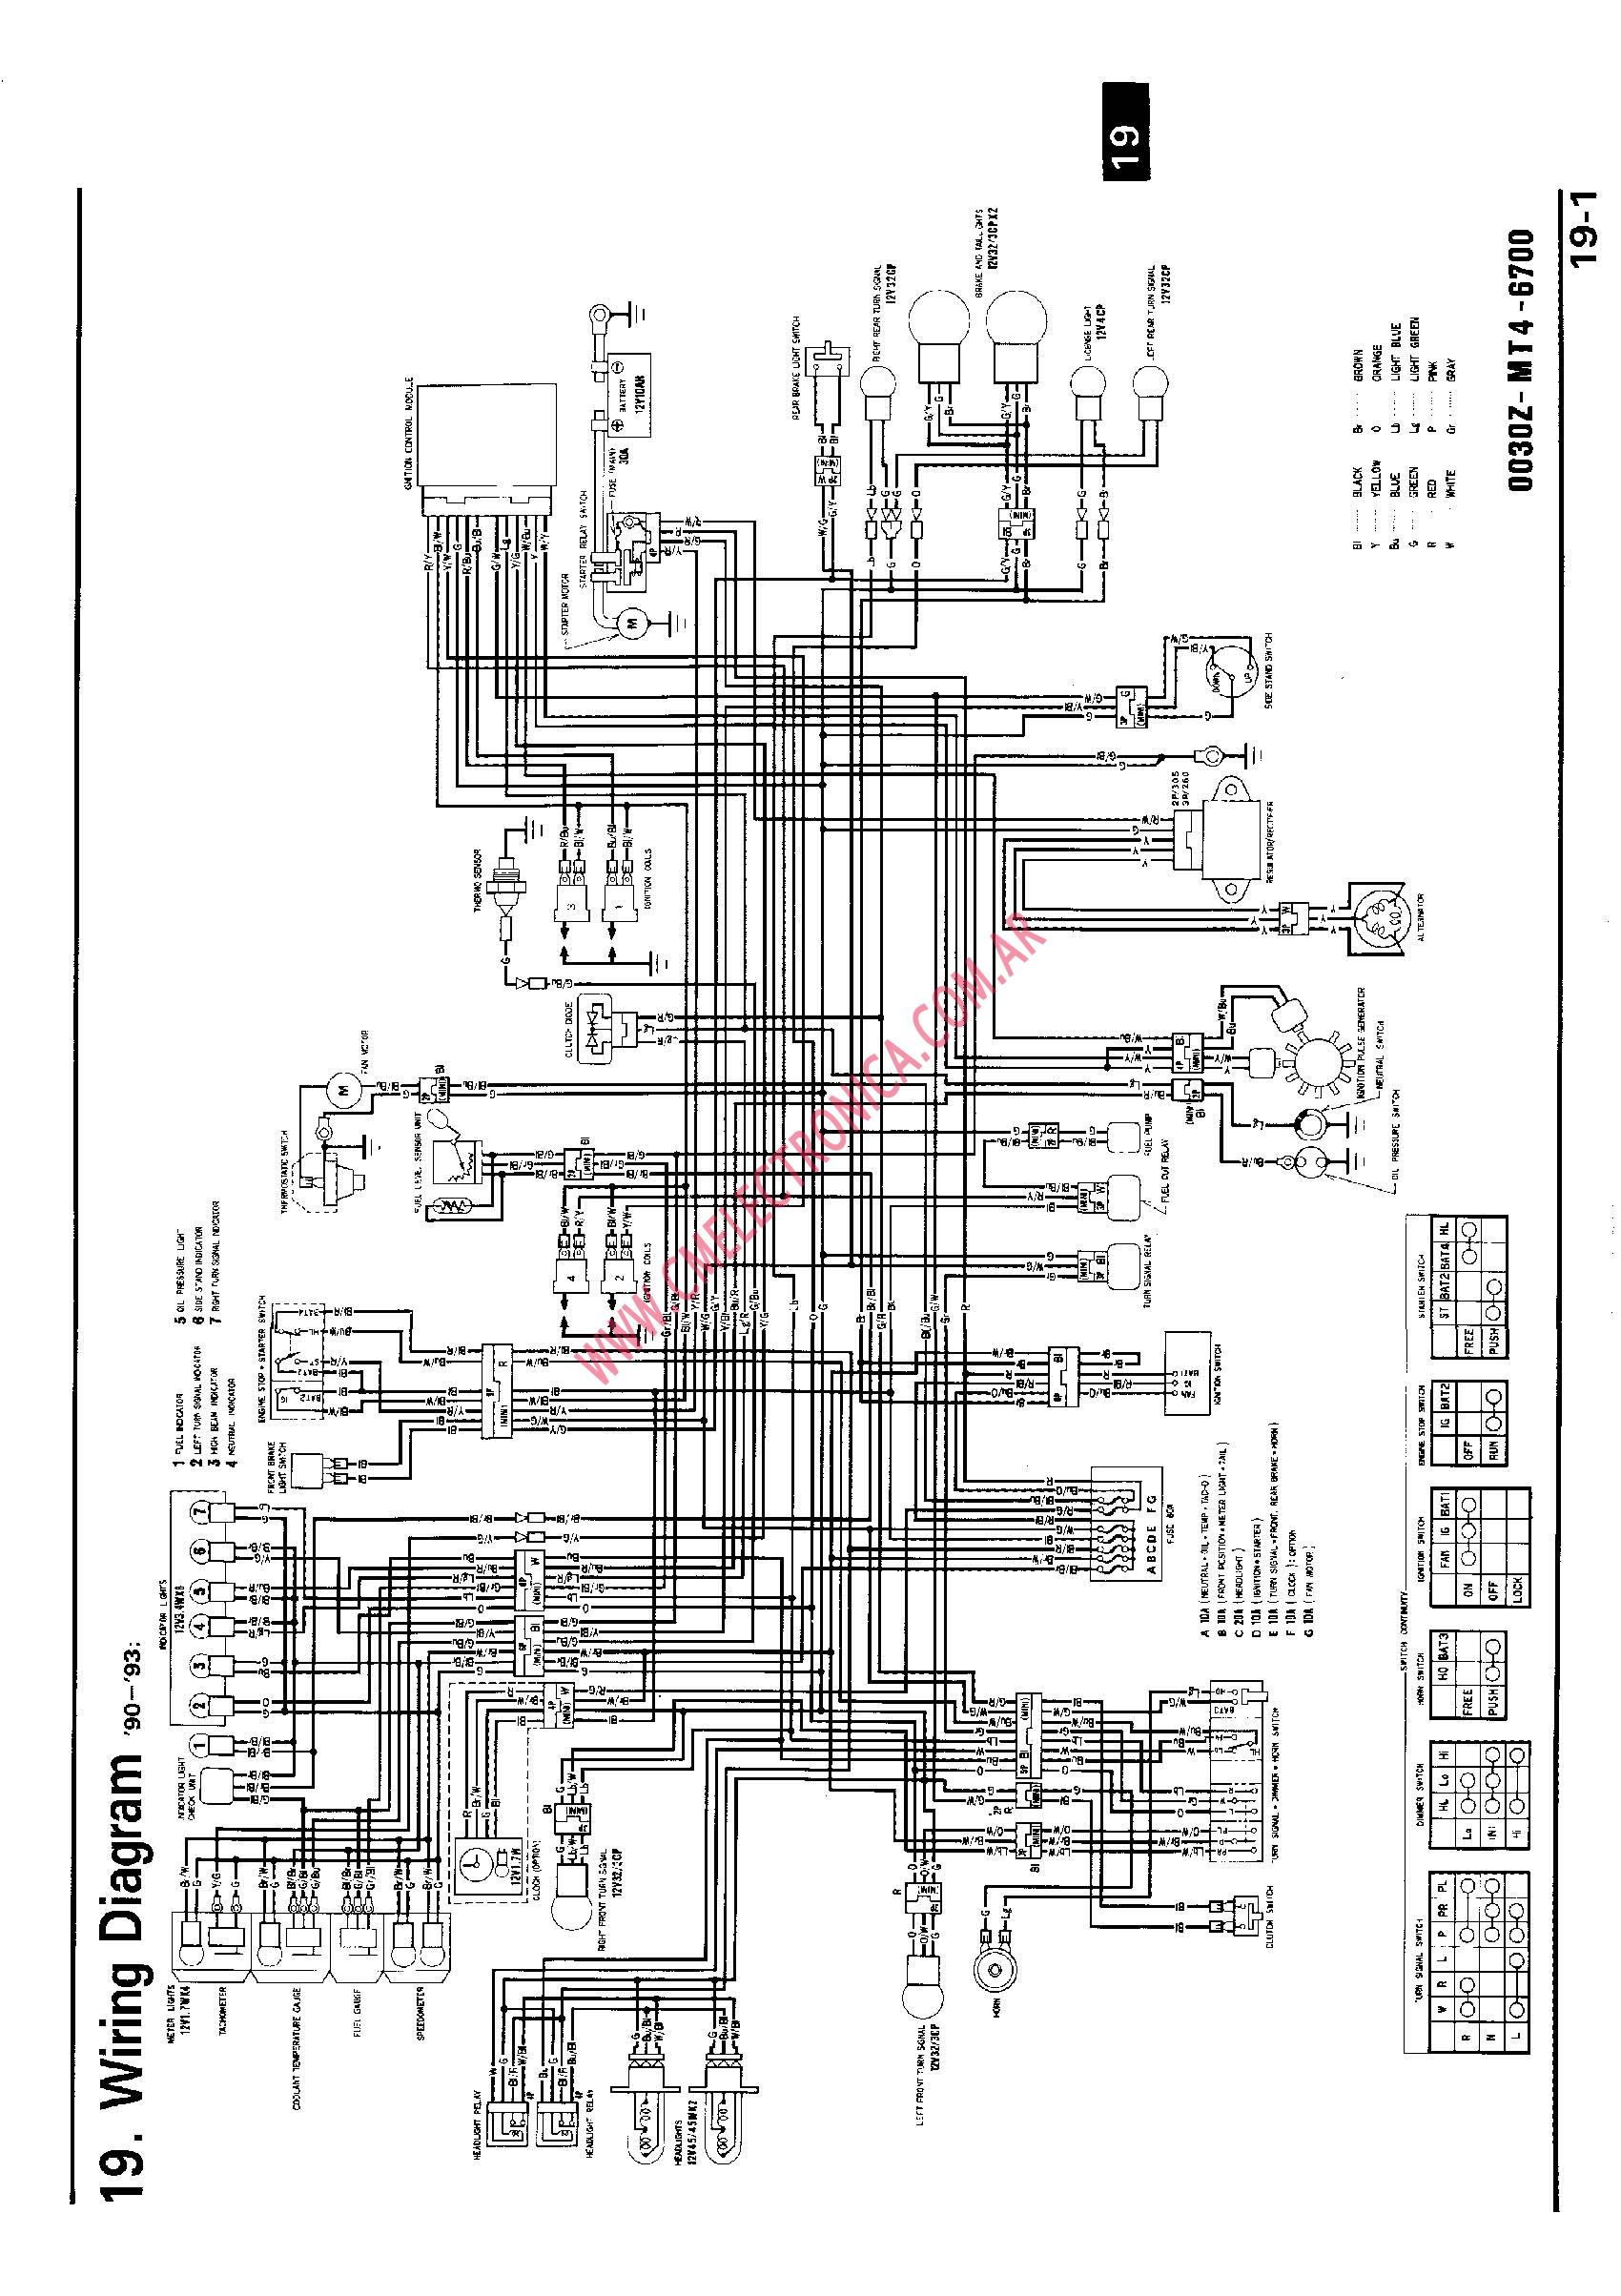 honda rc51 wiring schematic honda engine wiring diagram